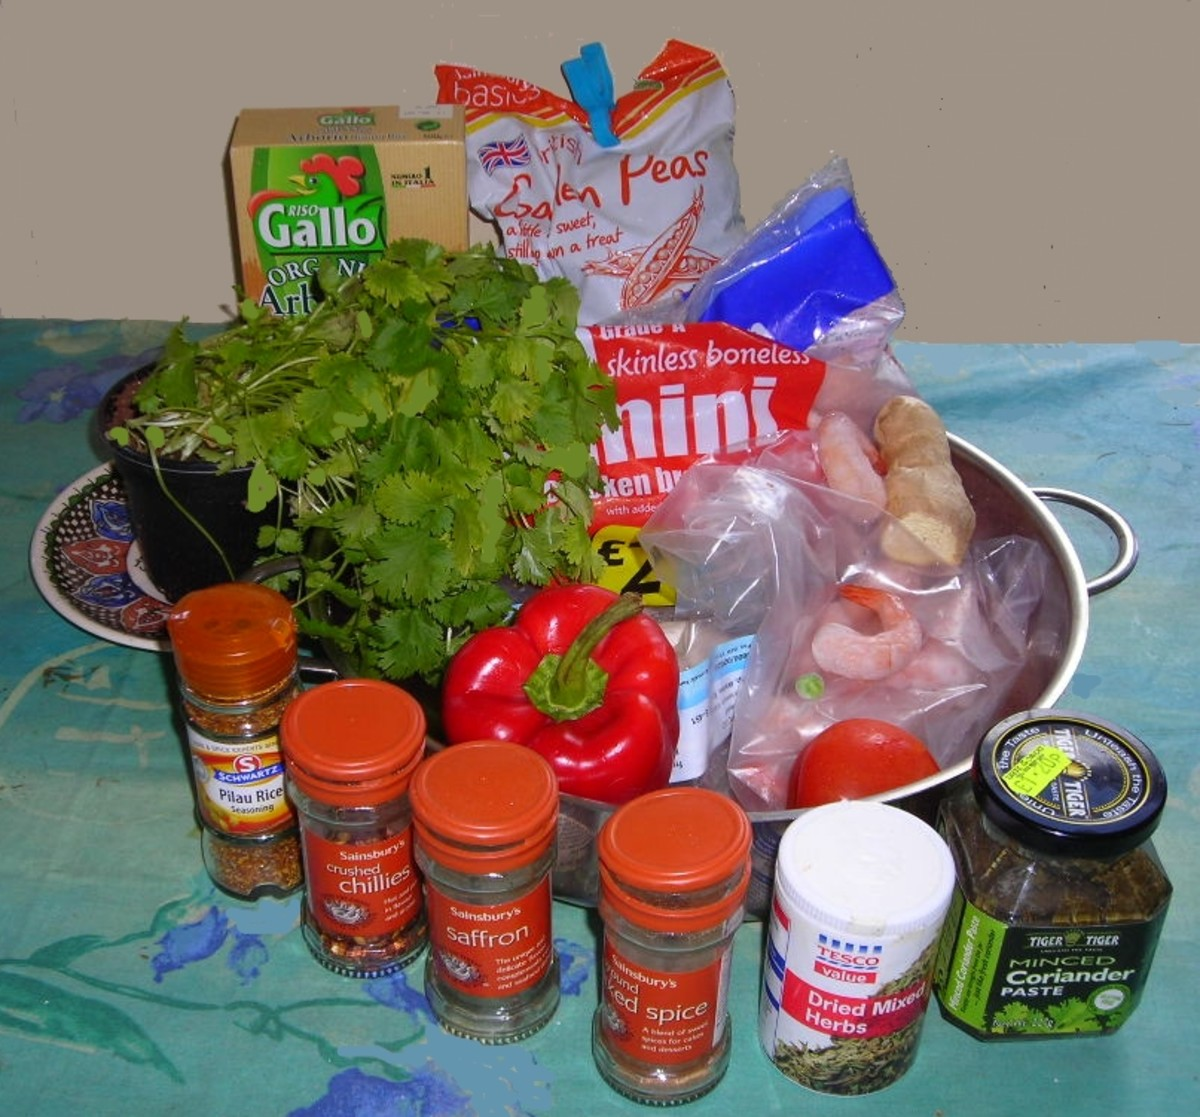 The ingredients for the paella.